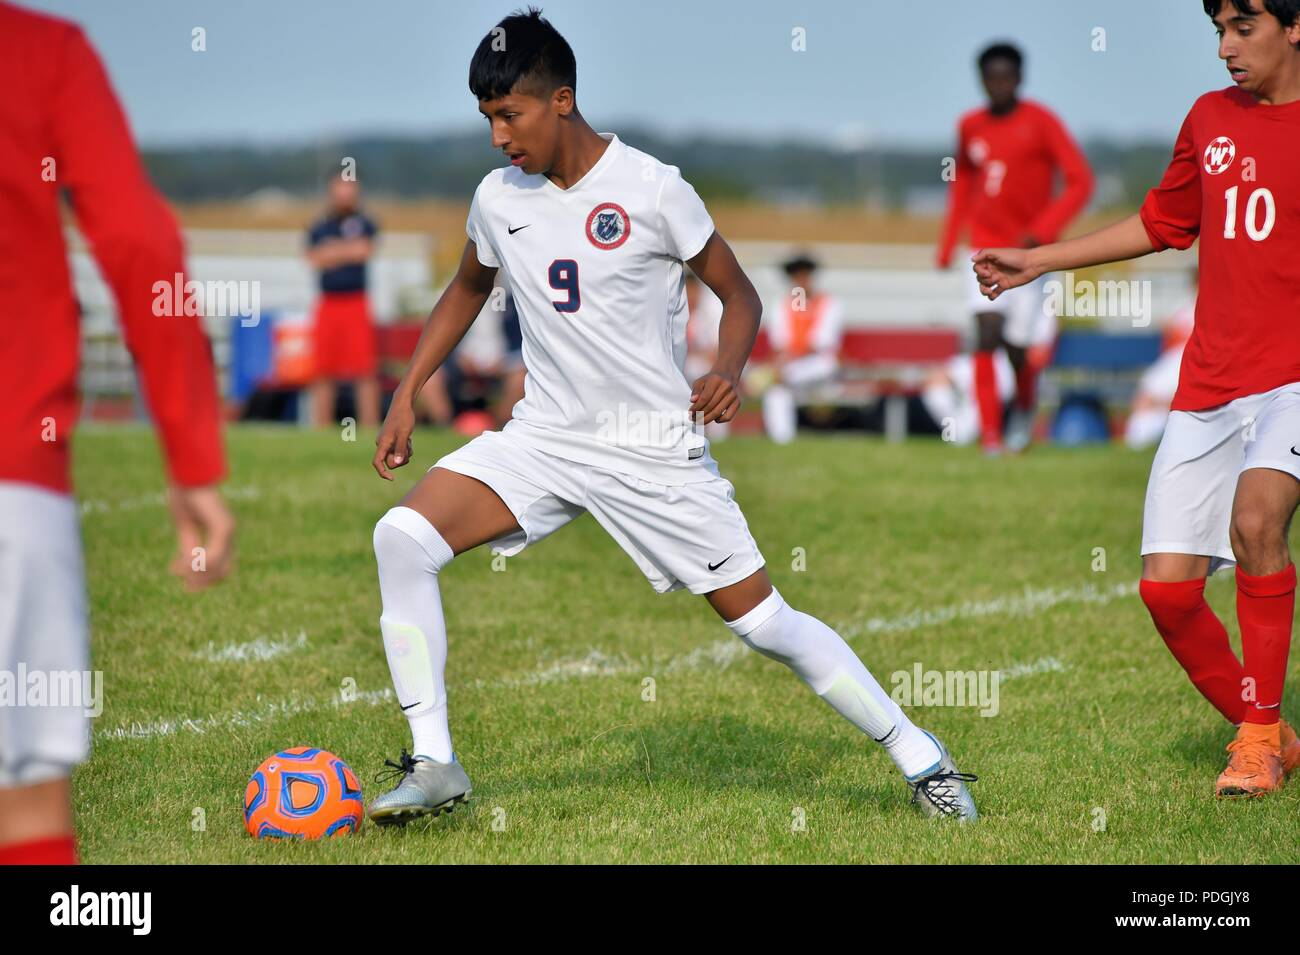 Player negotiating while in possession of the ball deep in the opponent's end of the pitch. USA. - Stock Image